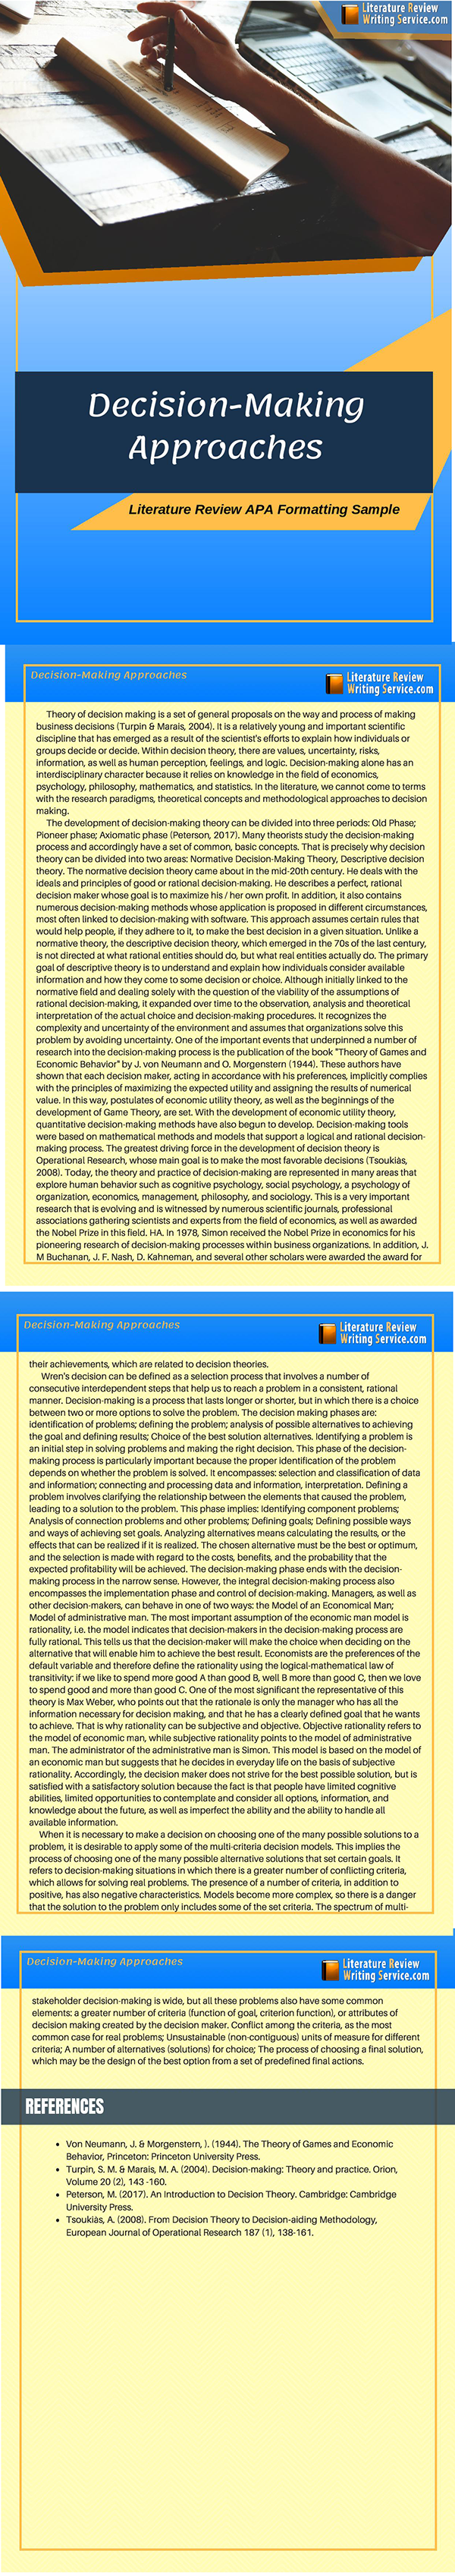 Literature Review Sample Apa 6th Edition On Pantone Canvas Gallery